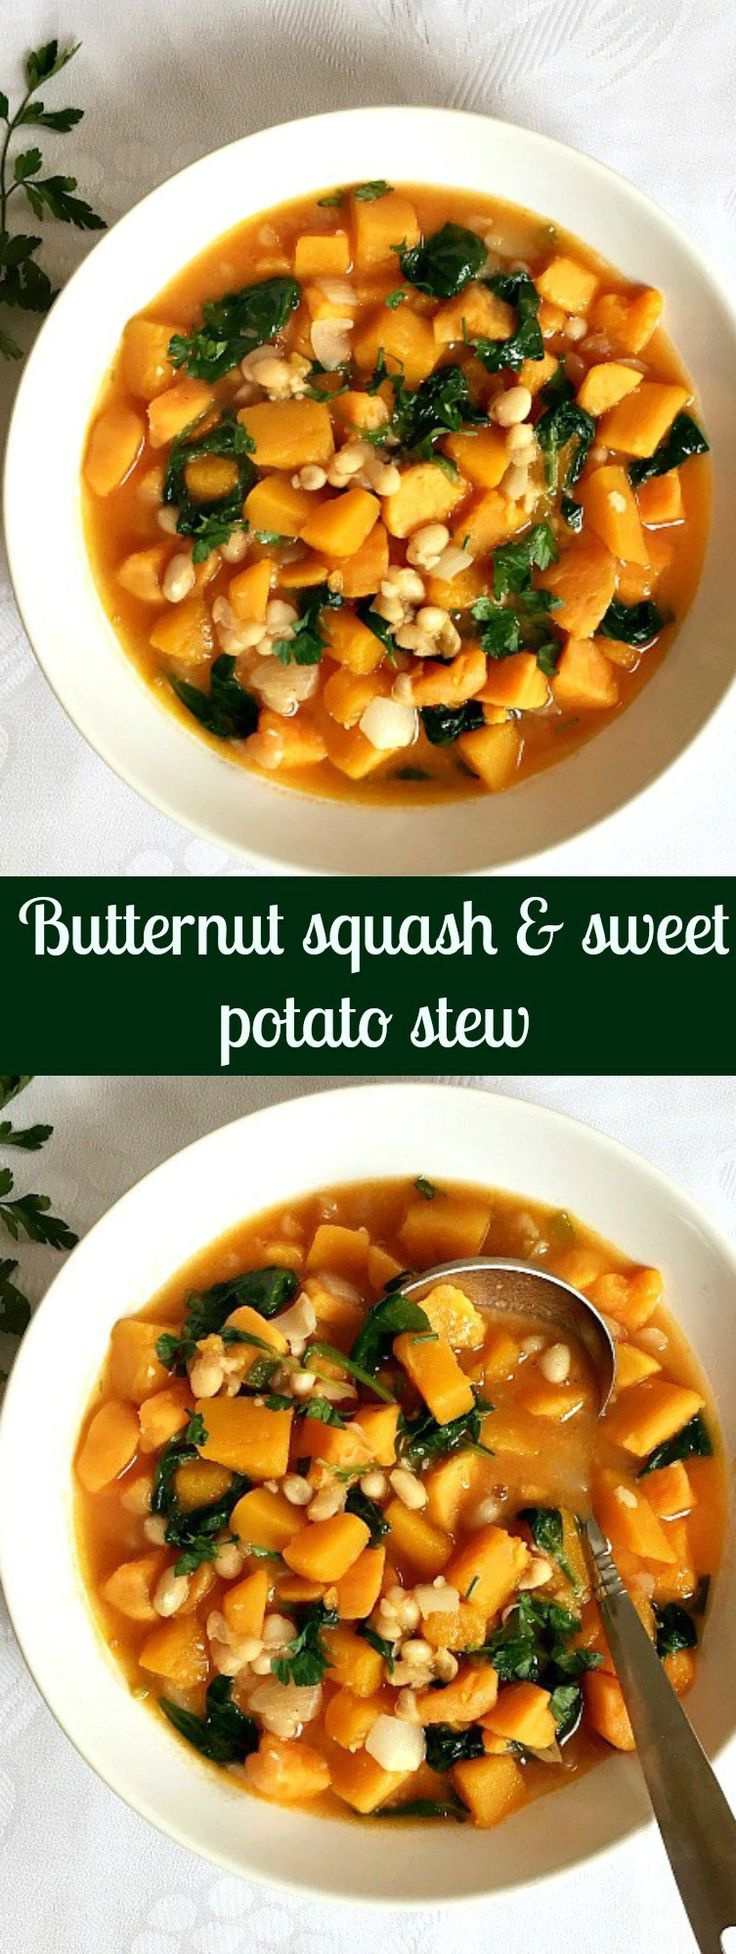 Butternut squash and sweet potato stew with spinach and beans, a healthy and comforting recipe.